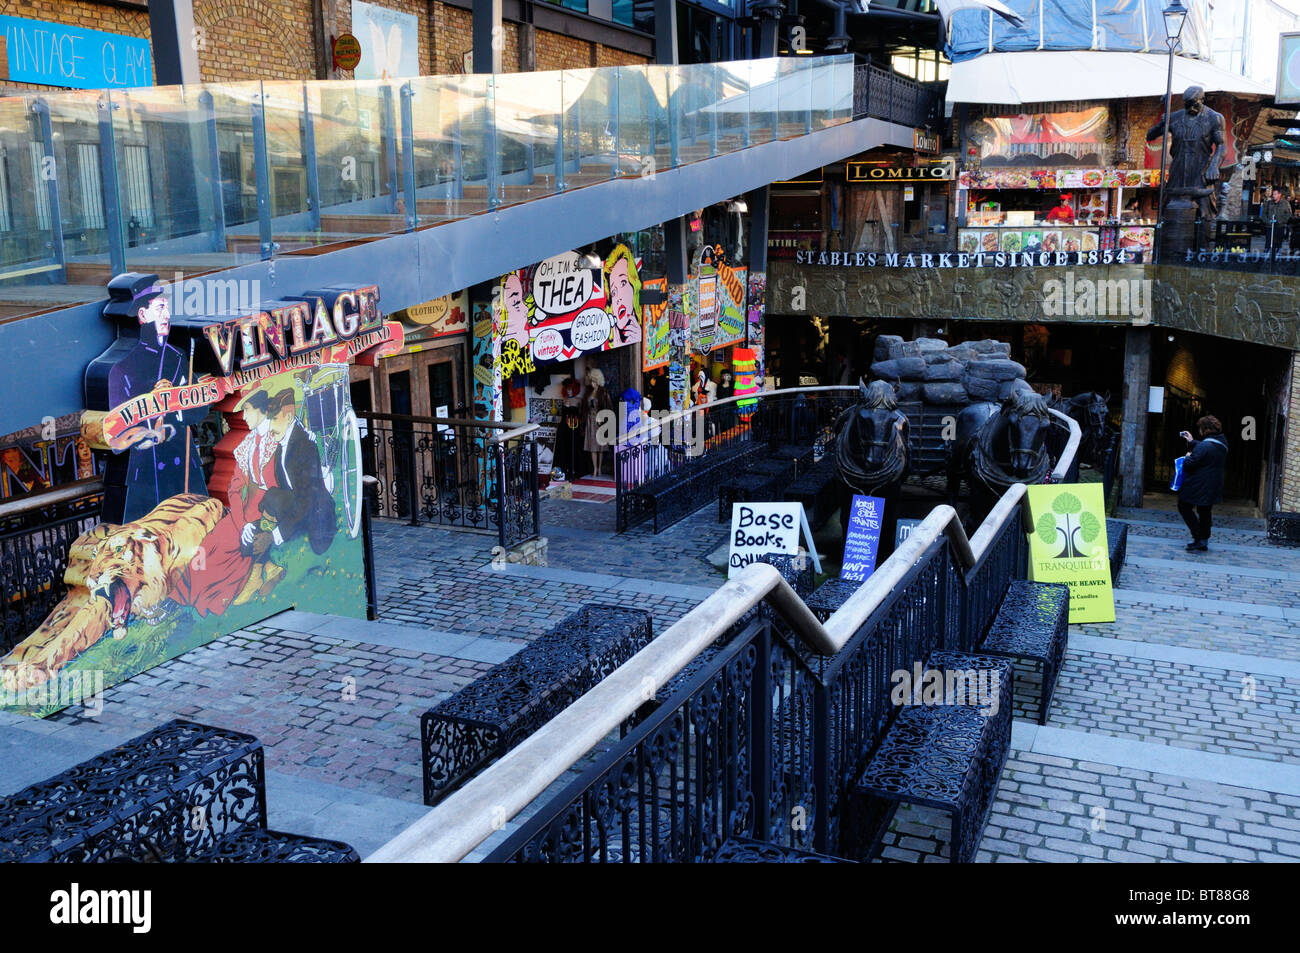 The Stables Market. Camden Town, London, England, UK - Stock Image